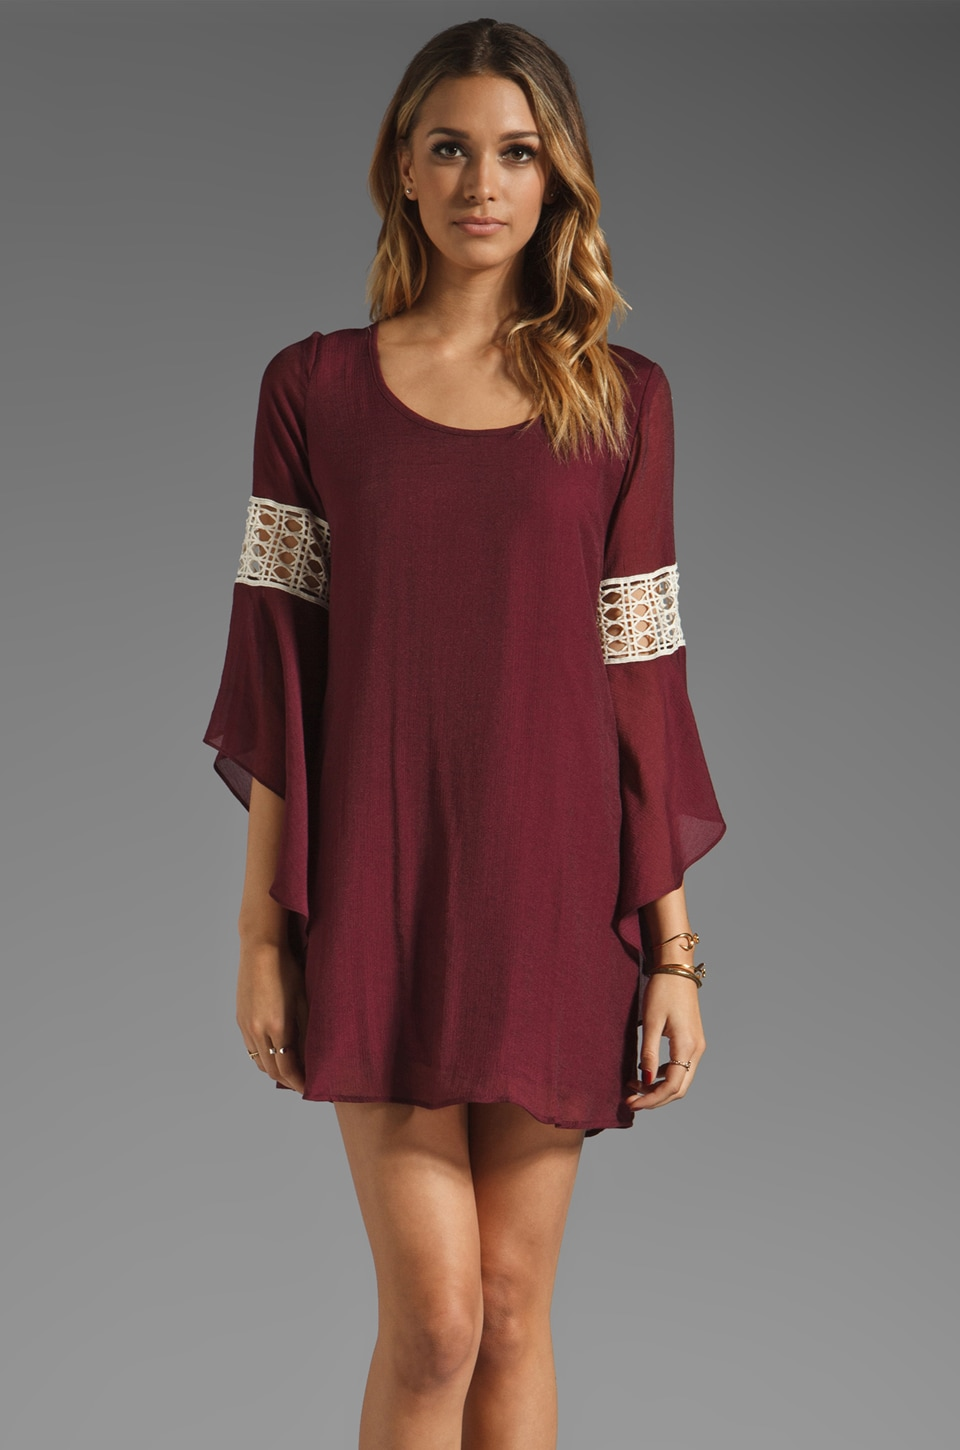 VAVA by Joy Han Bella Bell Sleeve Dress in Berry